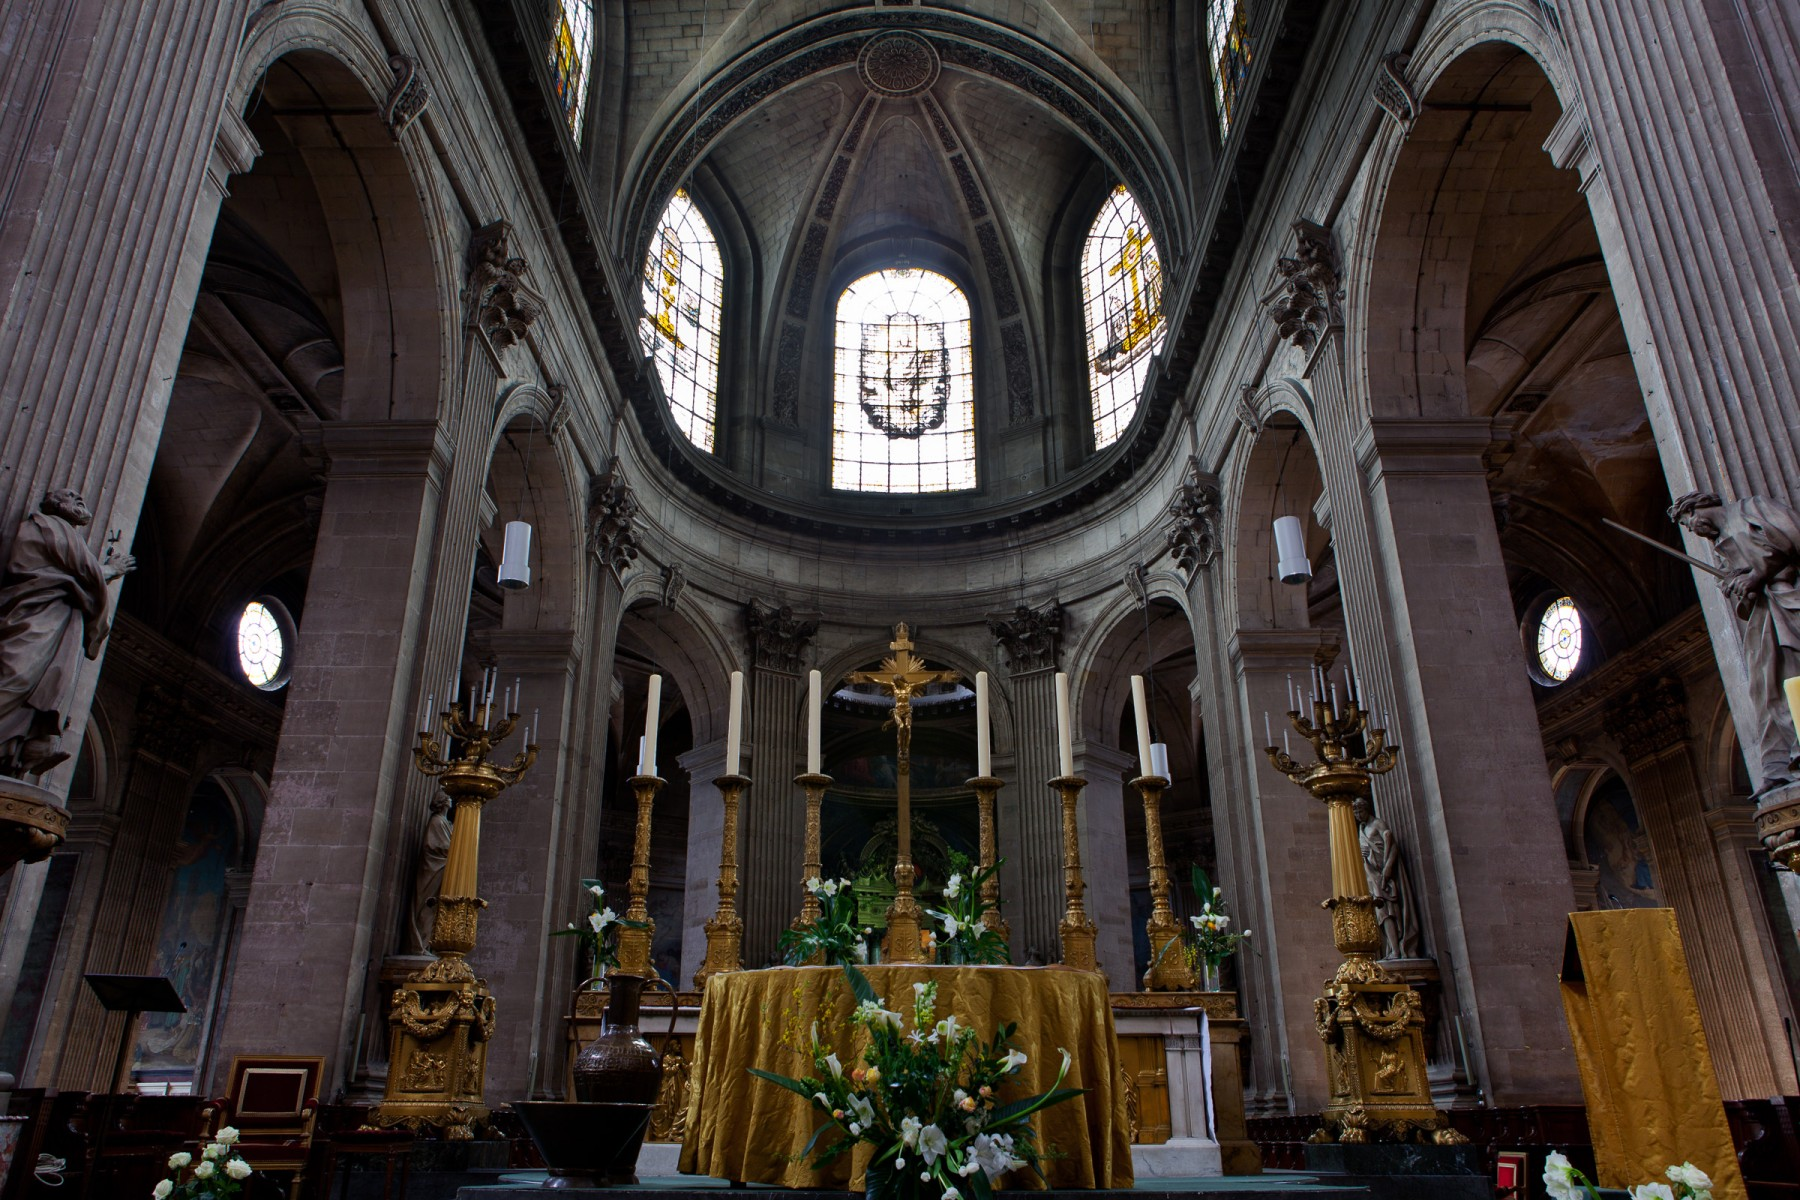 The alter of Saint-Sulpice